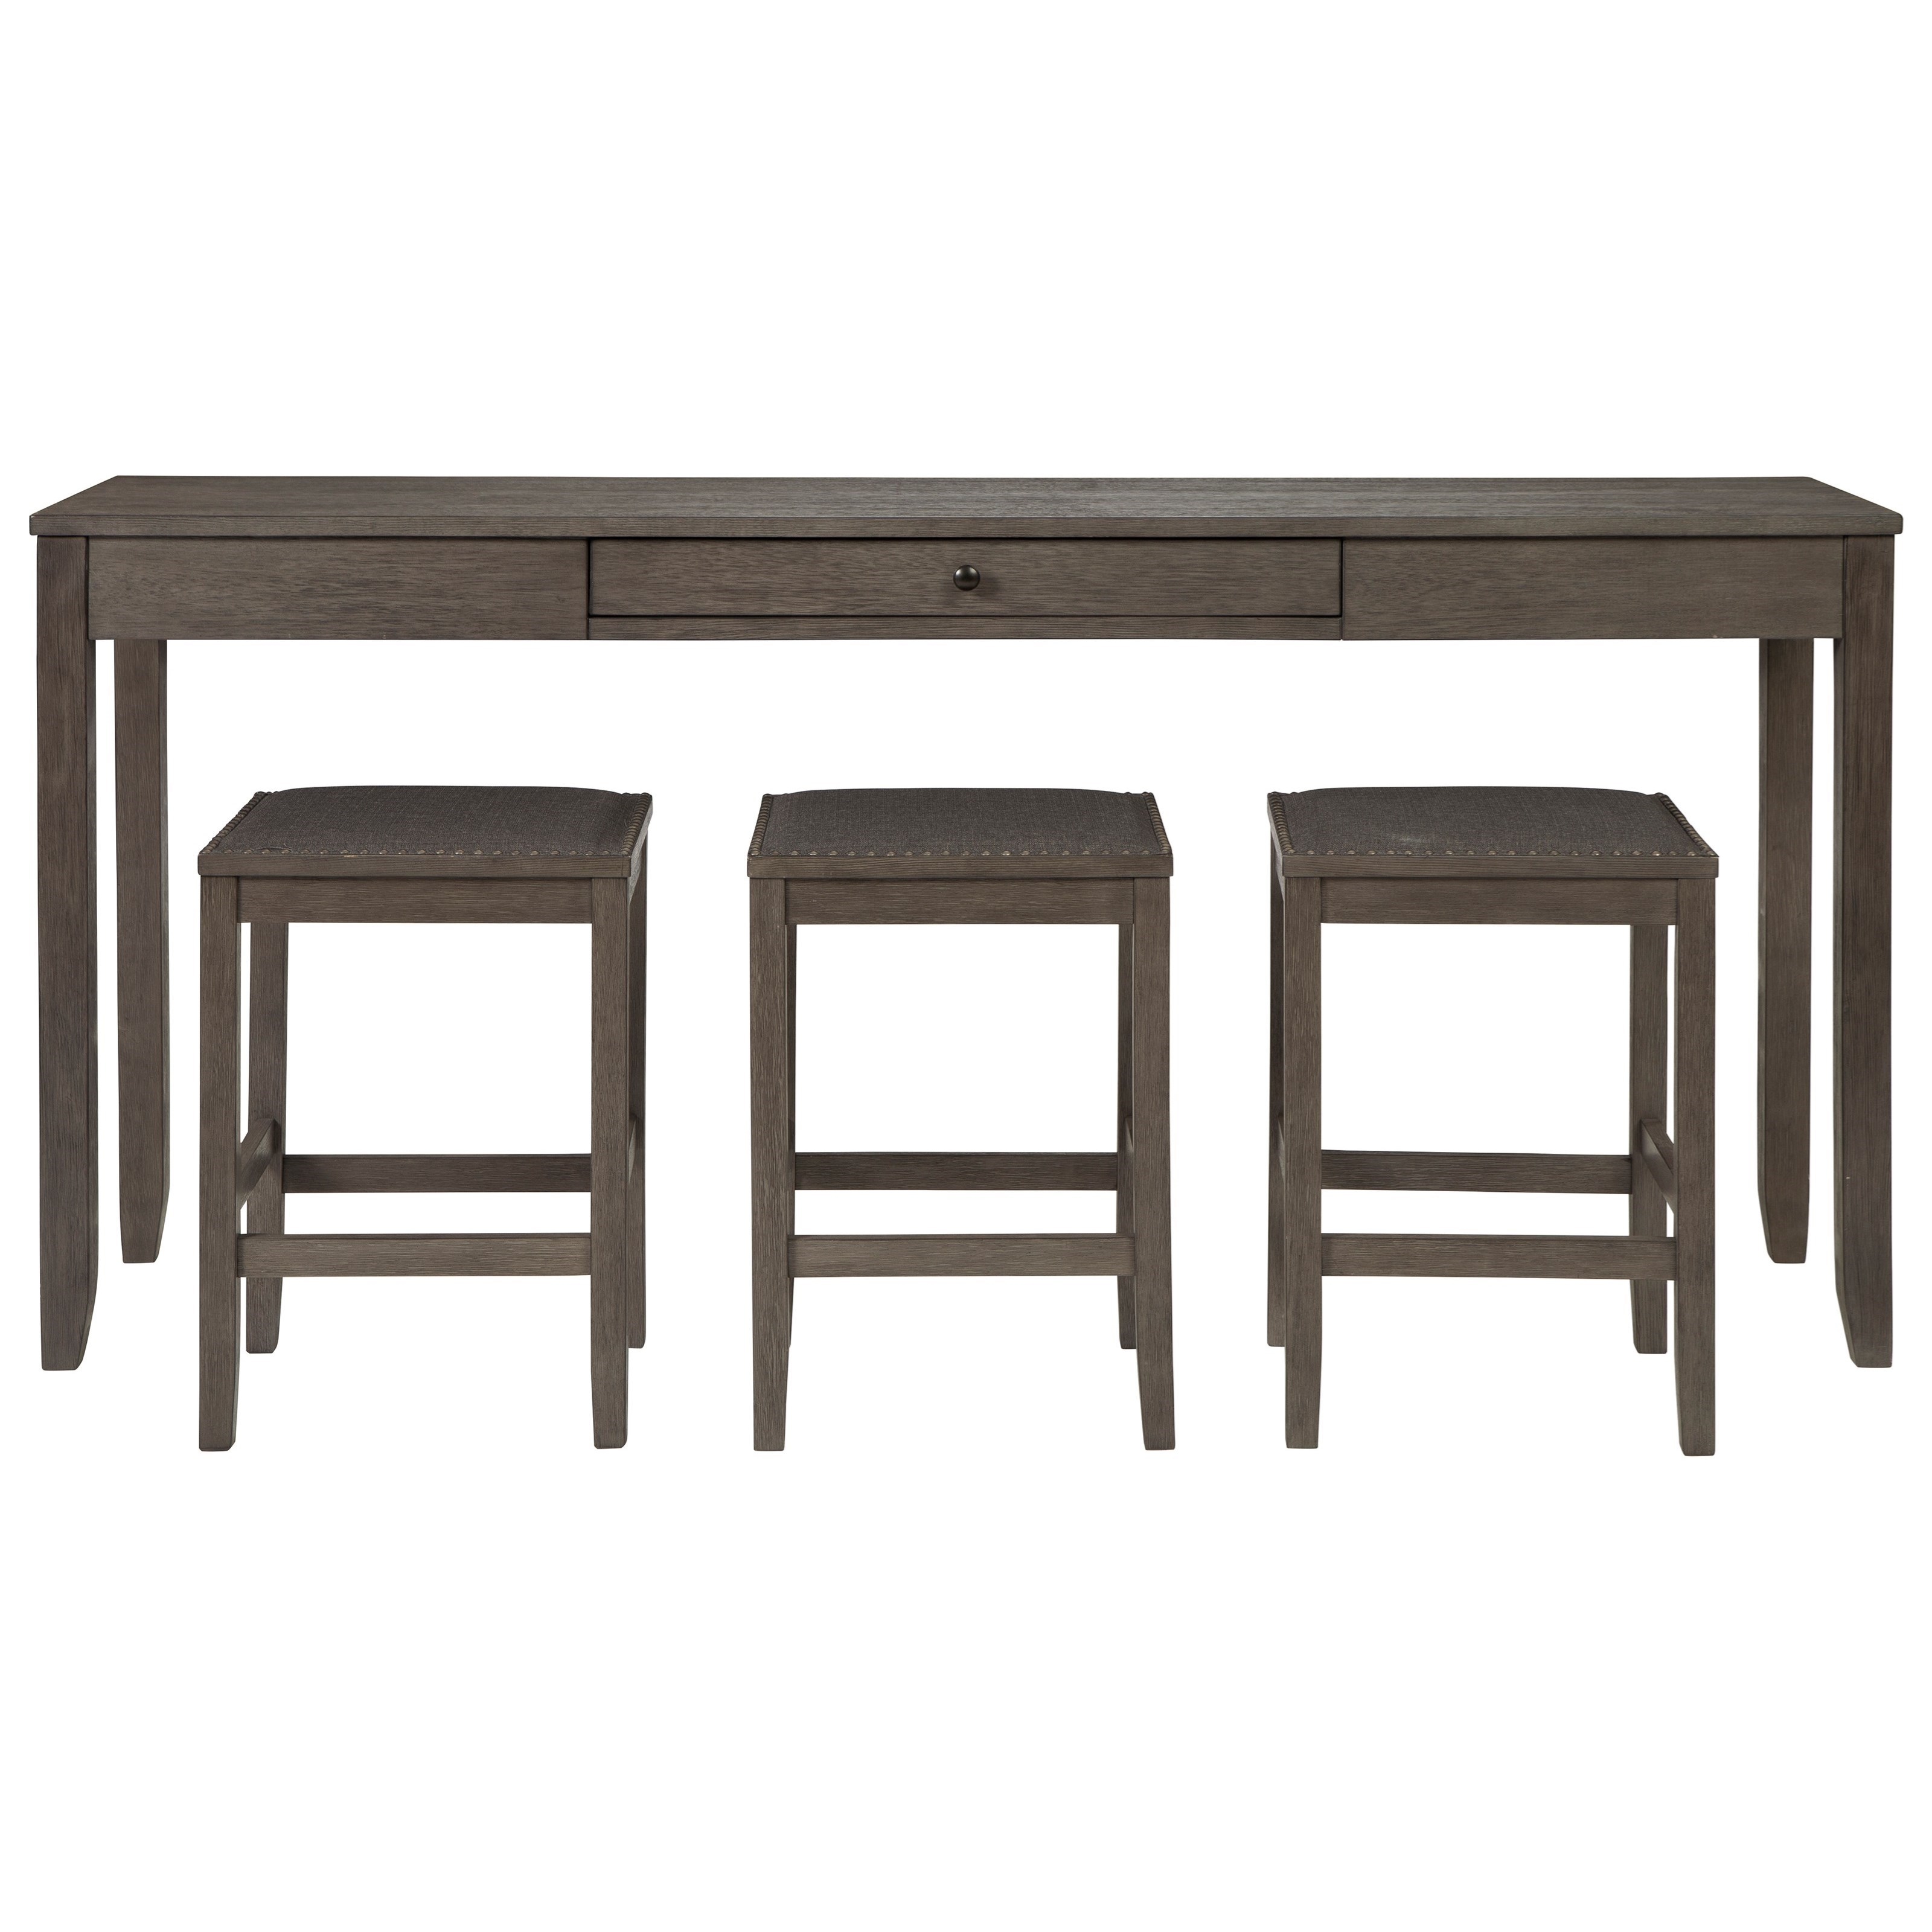 Caitbrook 4-Piece Rectangular Counter Table Set by Signature Design by Ashley at Standard Furniture